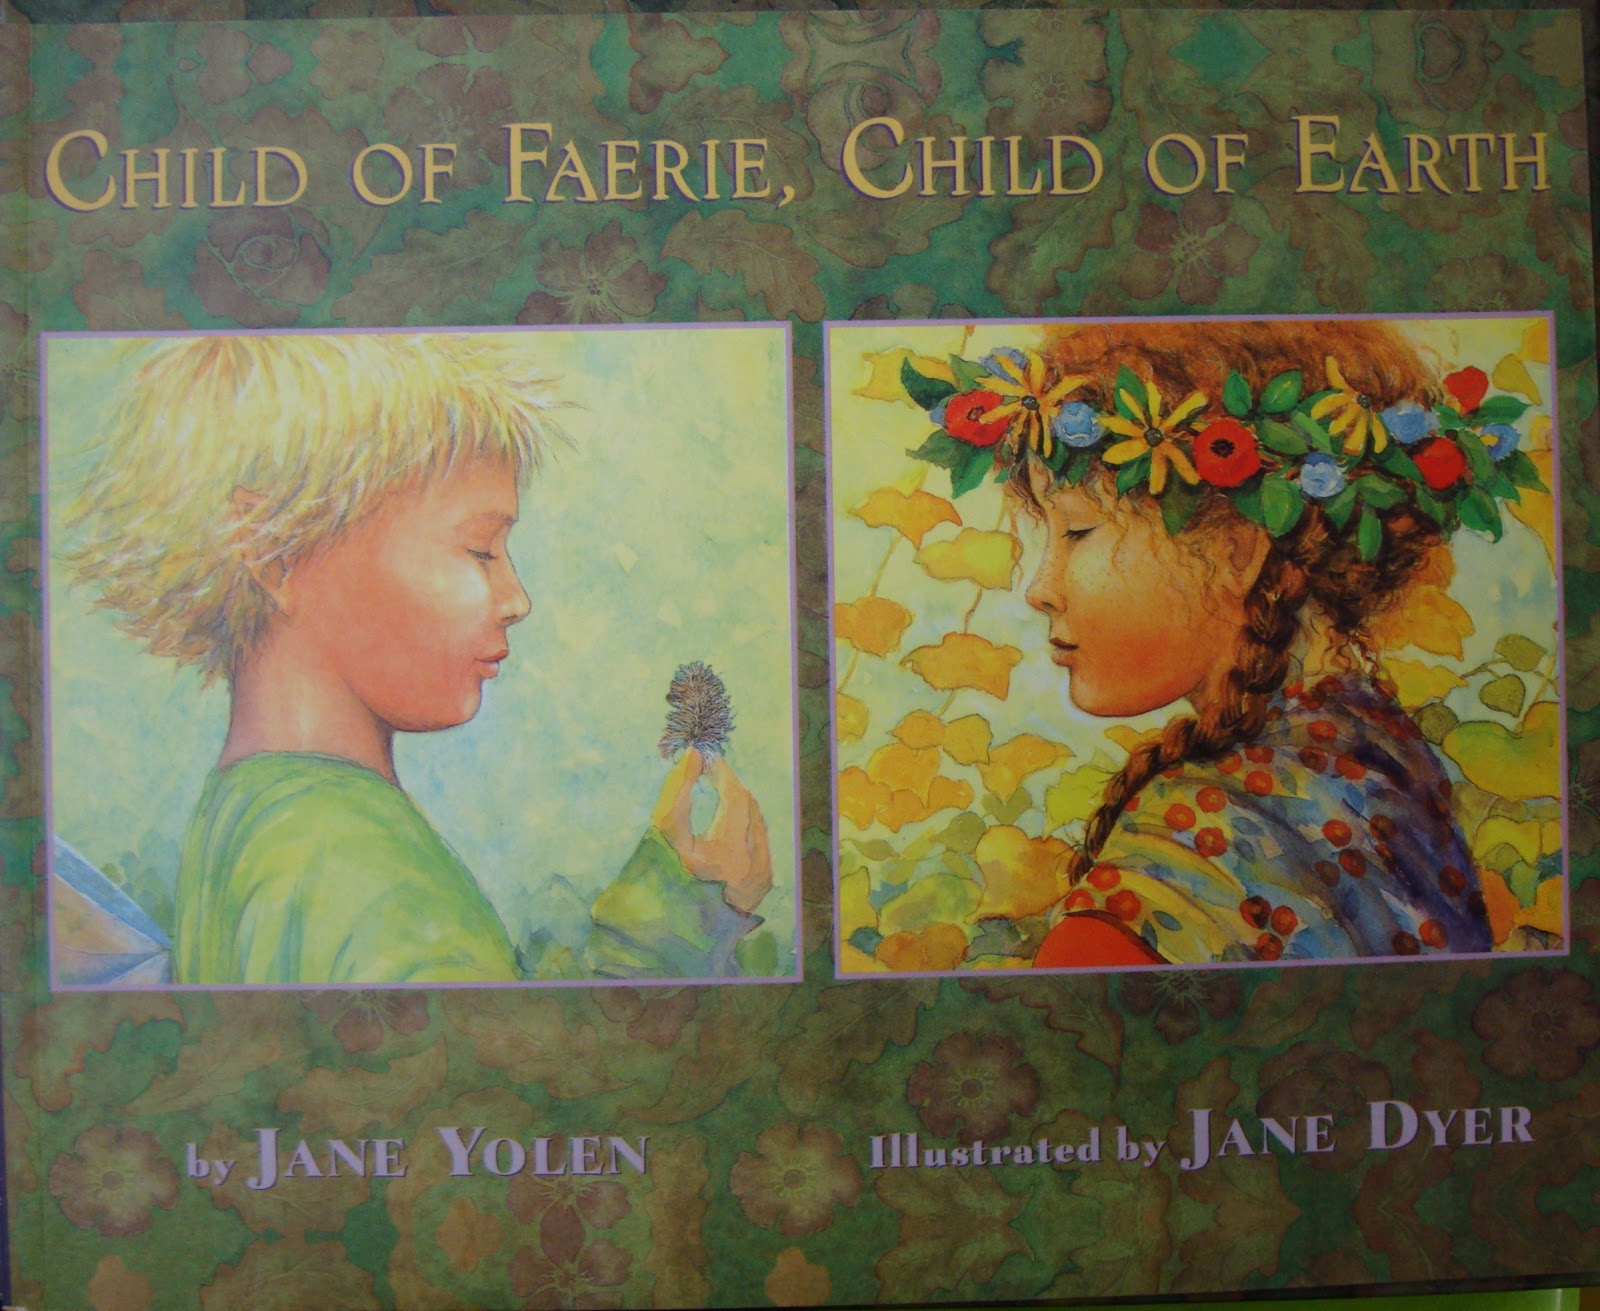 the stolen child faery world Yeats' 'stolen child' longs for the lost world of faery but also finds something precious in the here and now world of ireland.